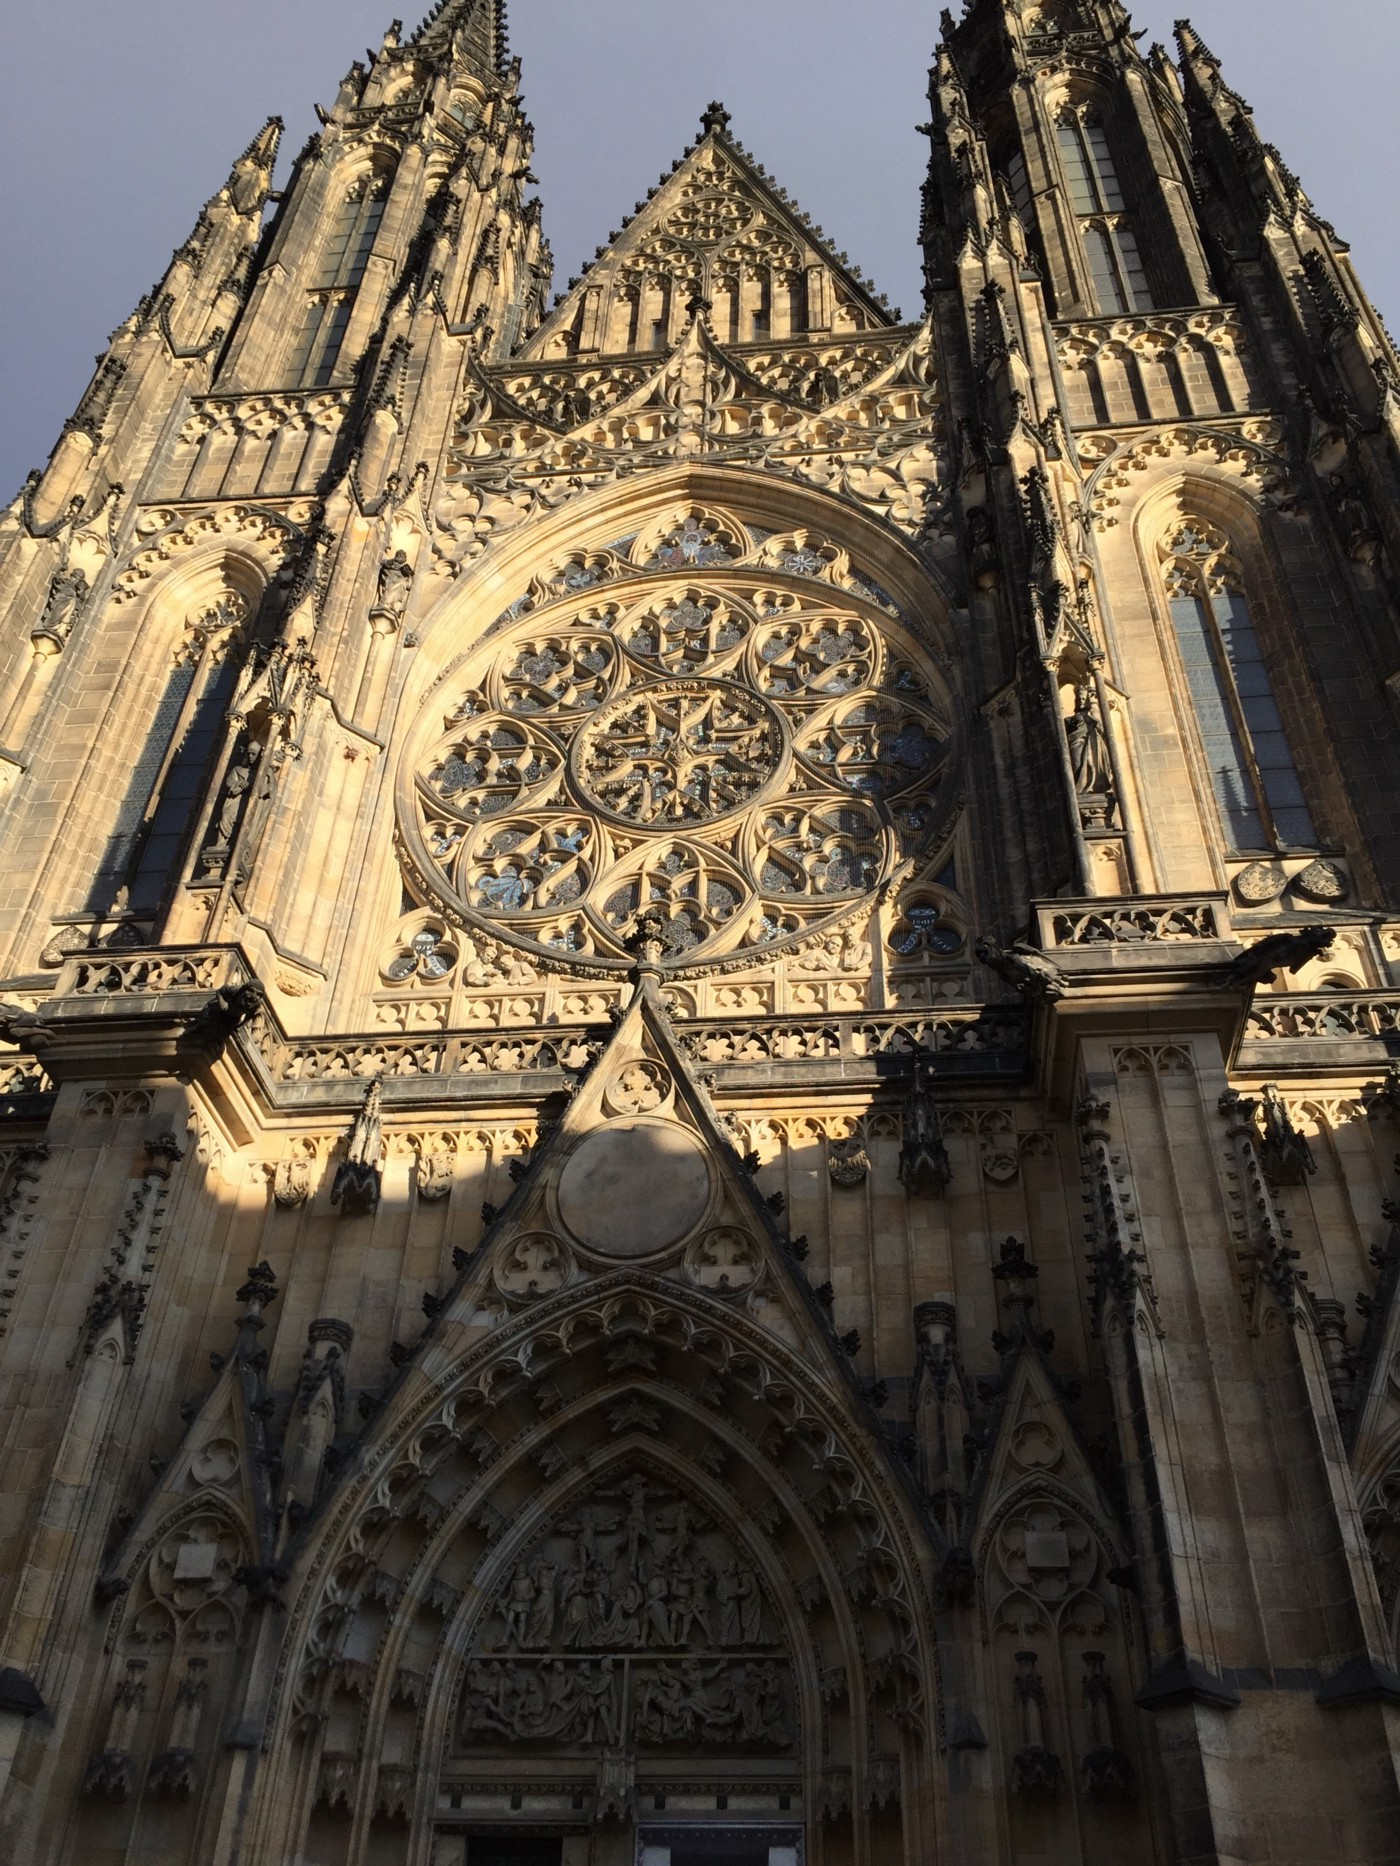 Gothic exterior of St Vitus Cathedral